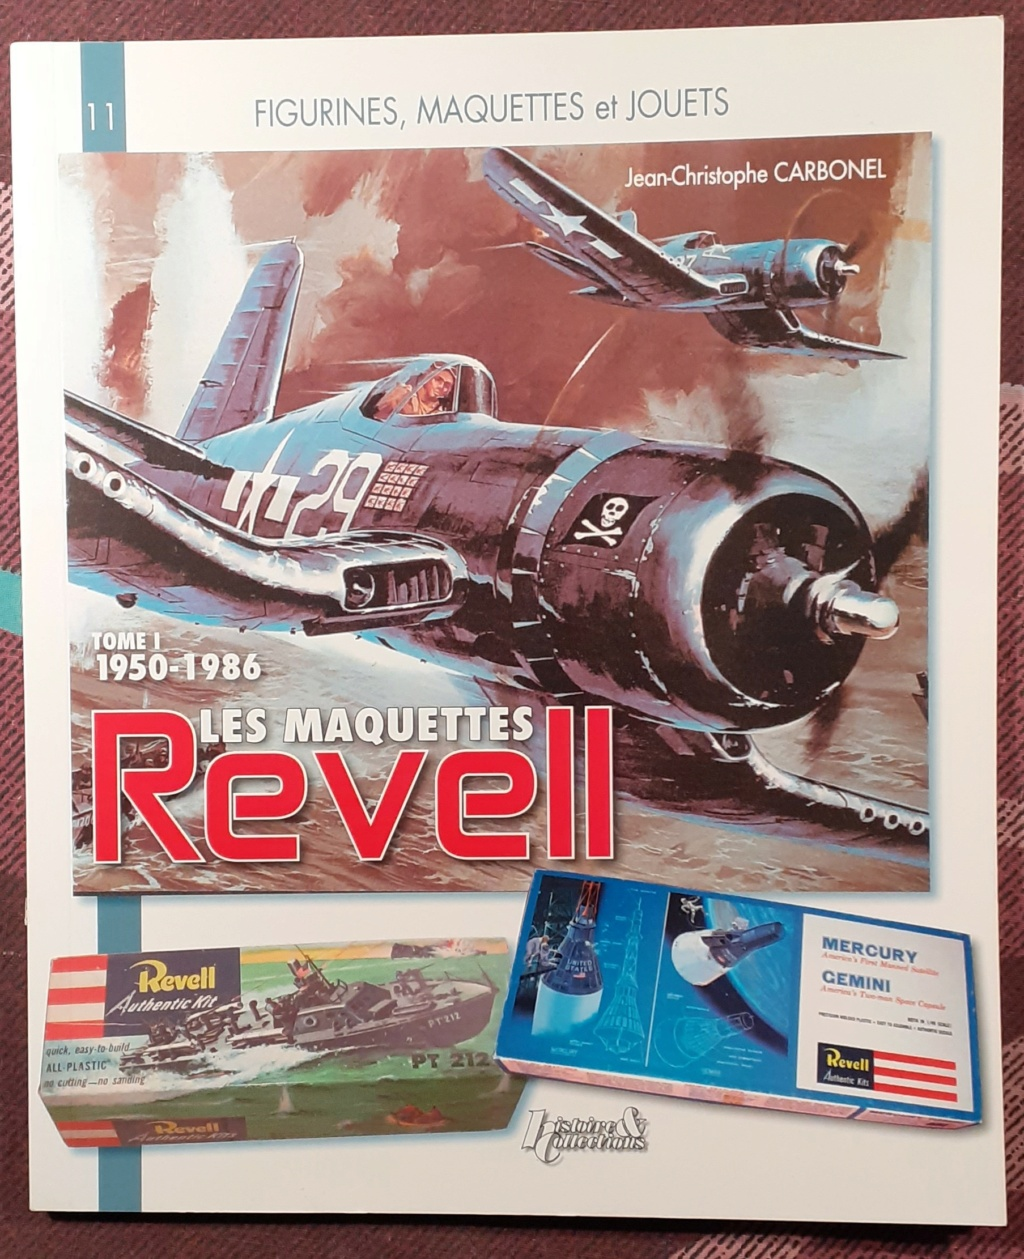 achats divers - Page 2 Revell20